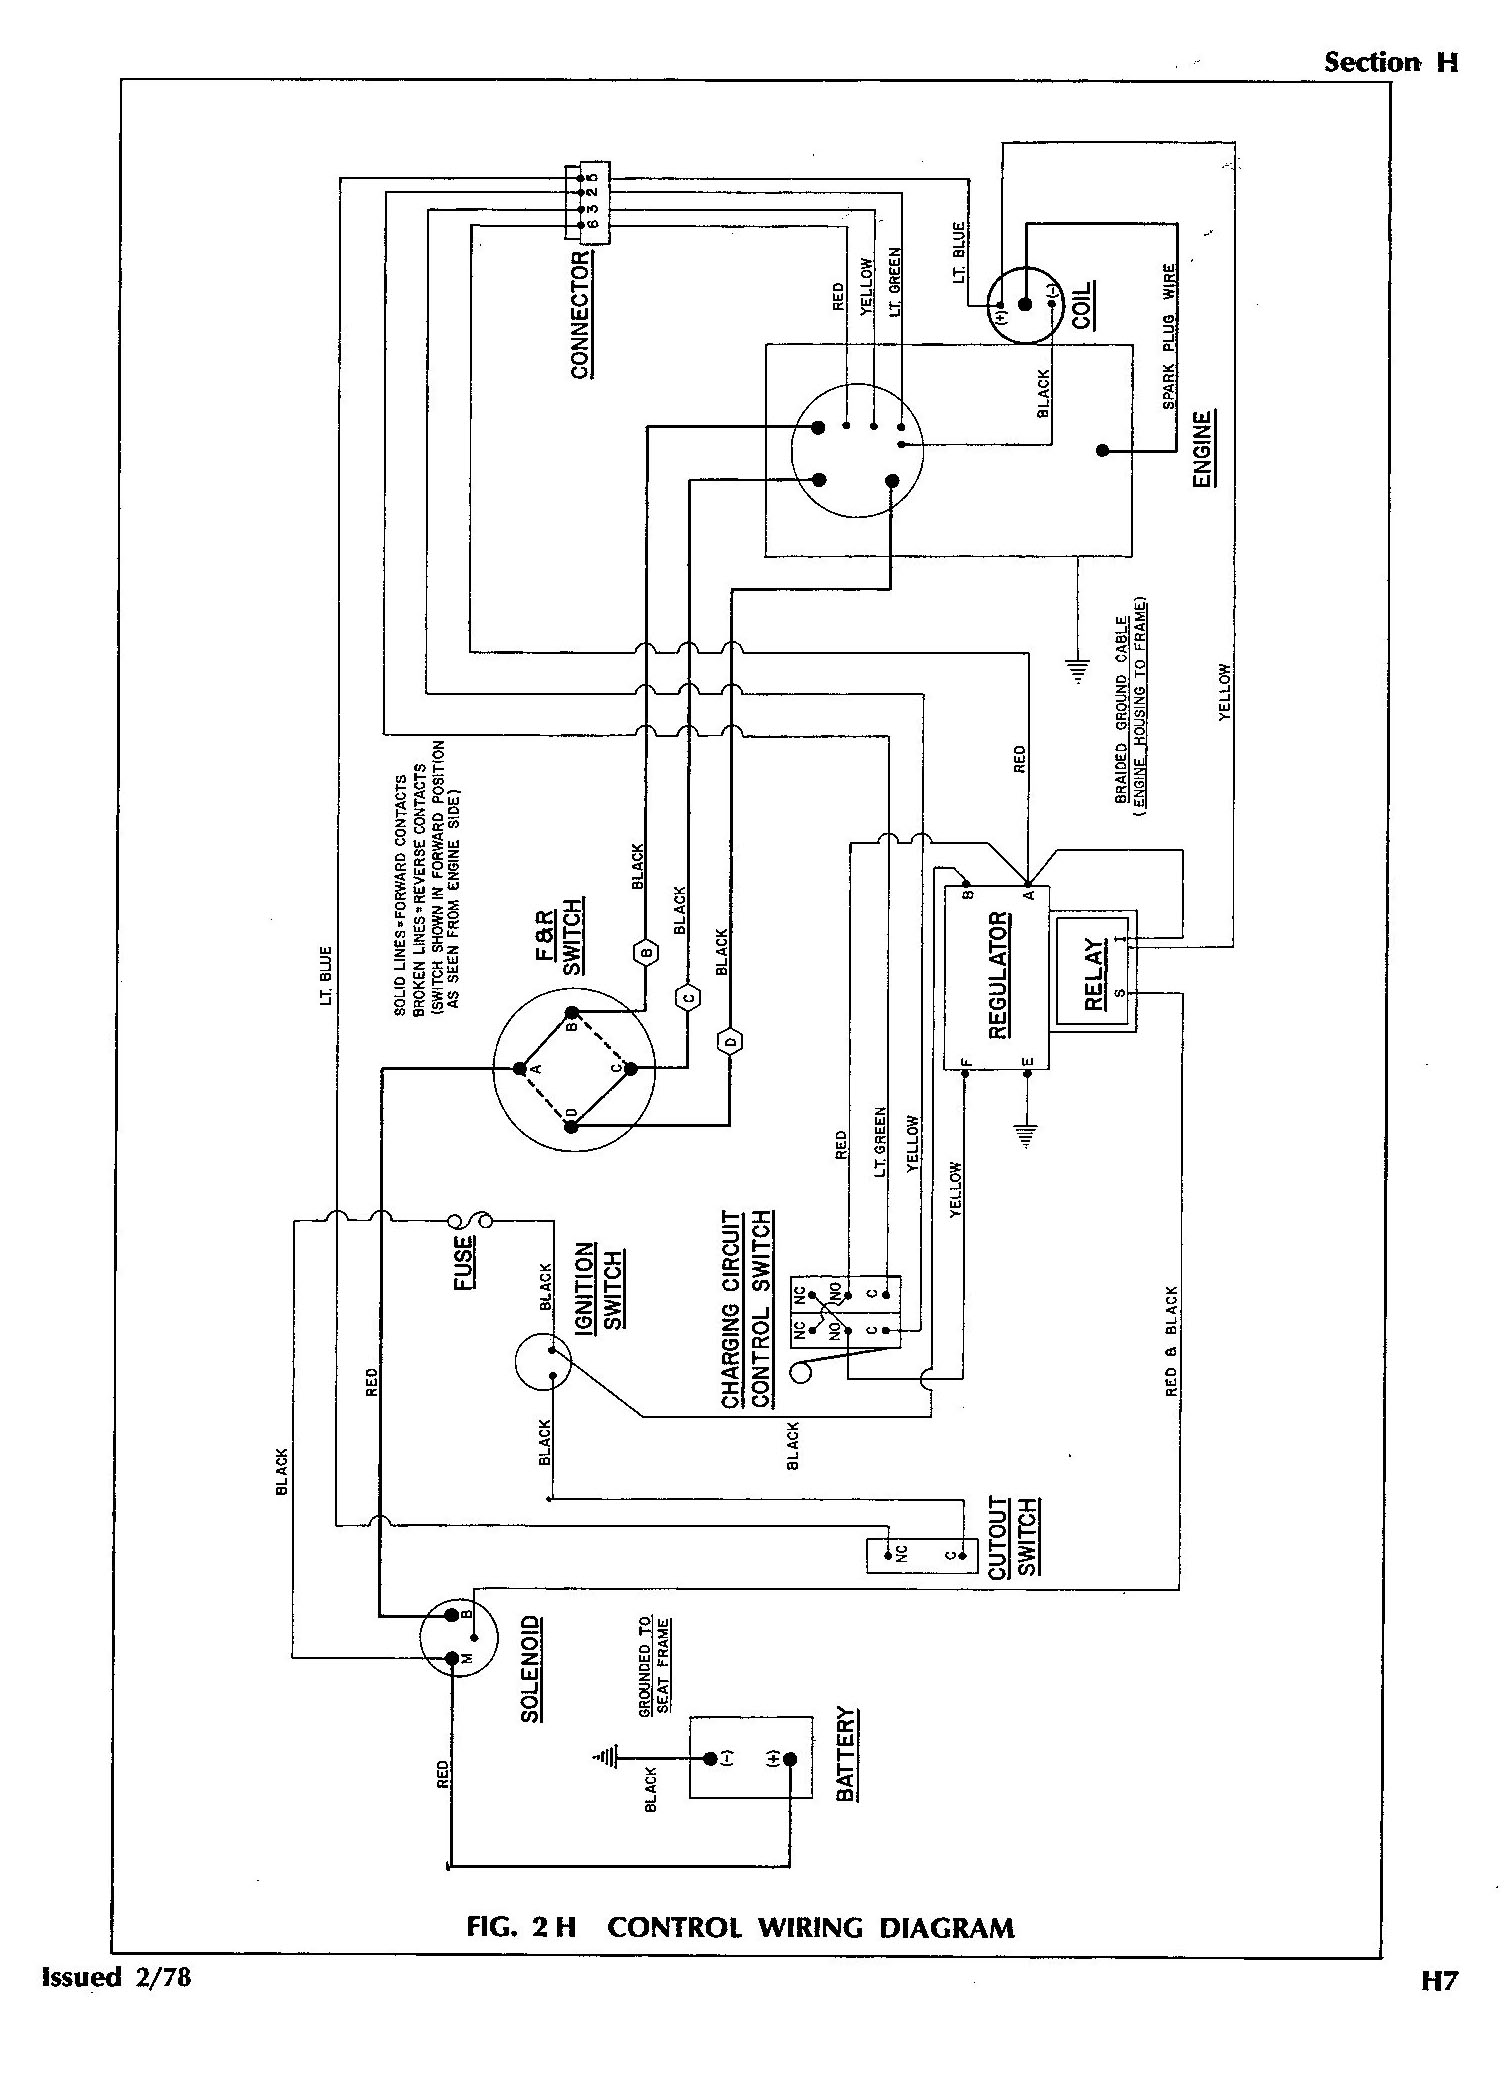 ez go powerwise qe 48 volt charger wiring diagram